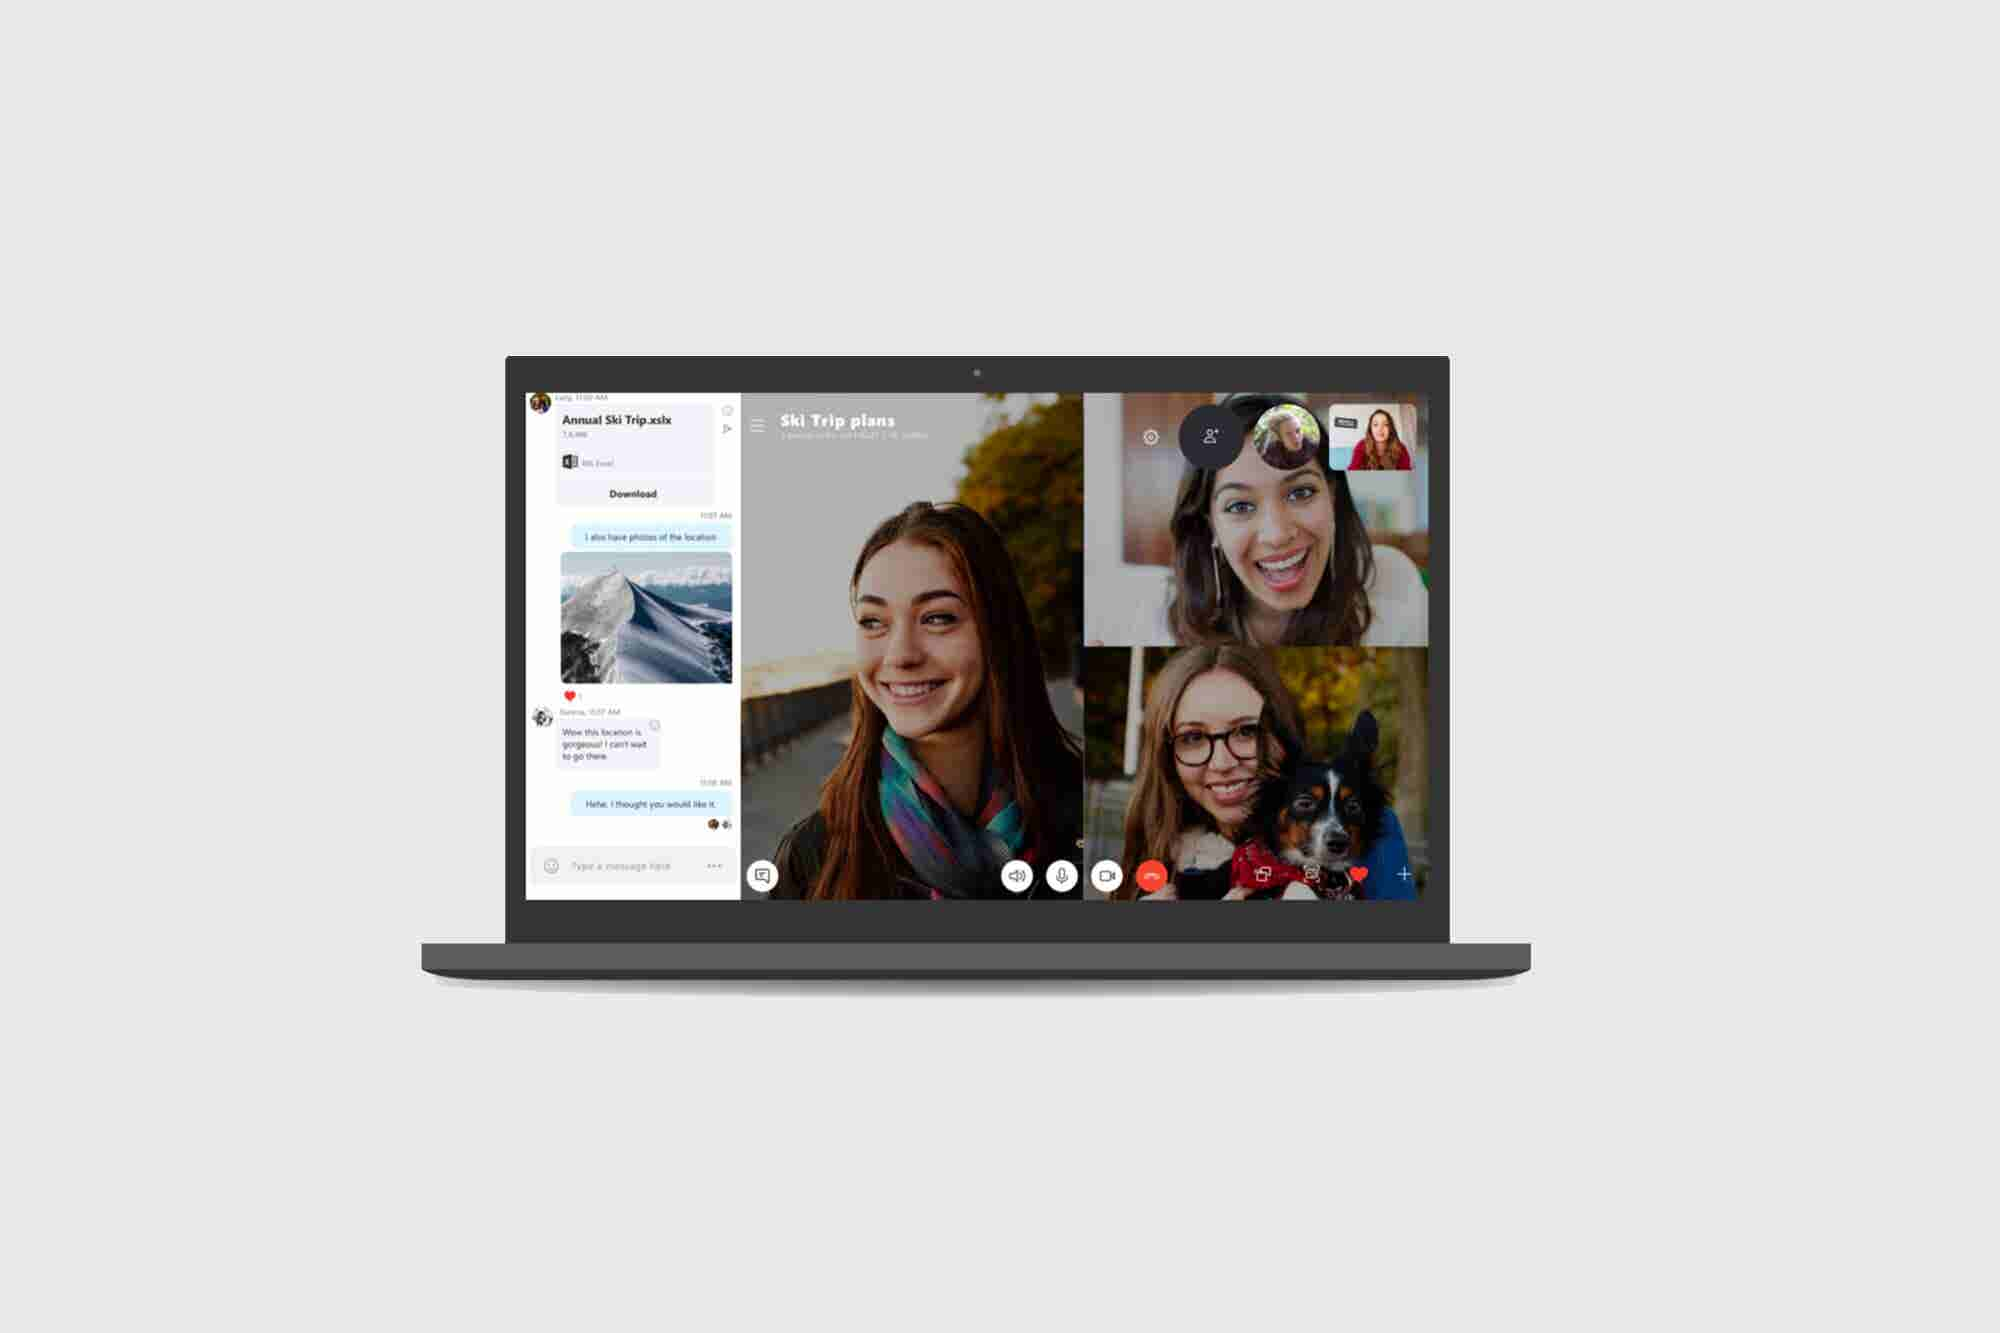 Microsoft Launches Skype 8.0 With New Video and Chat Features